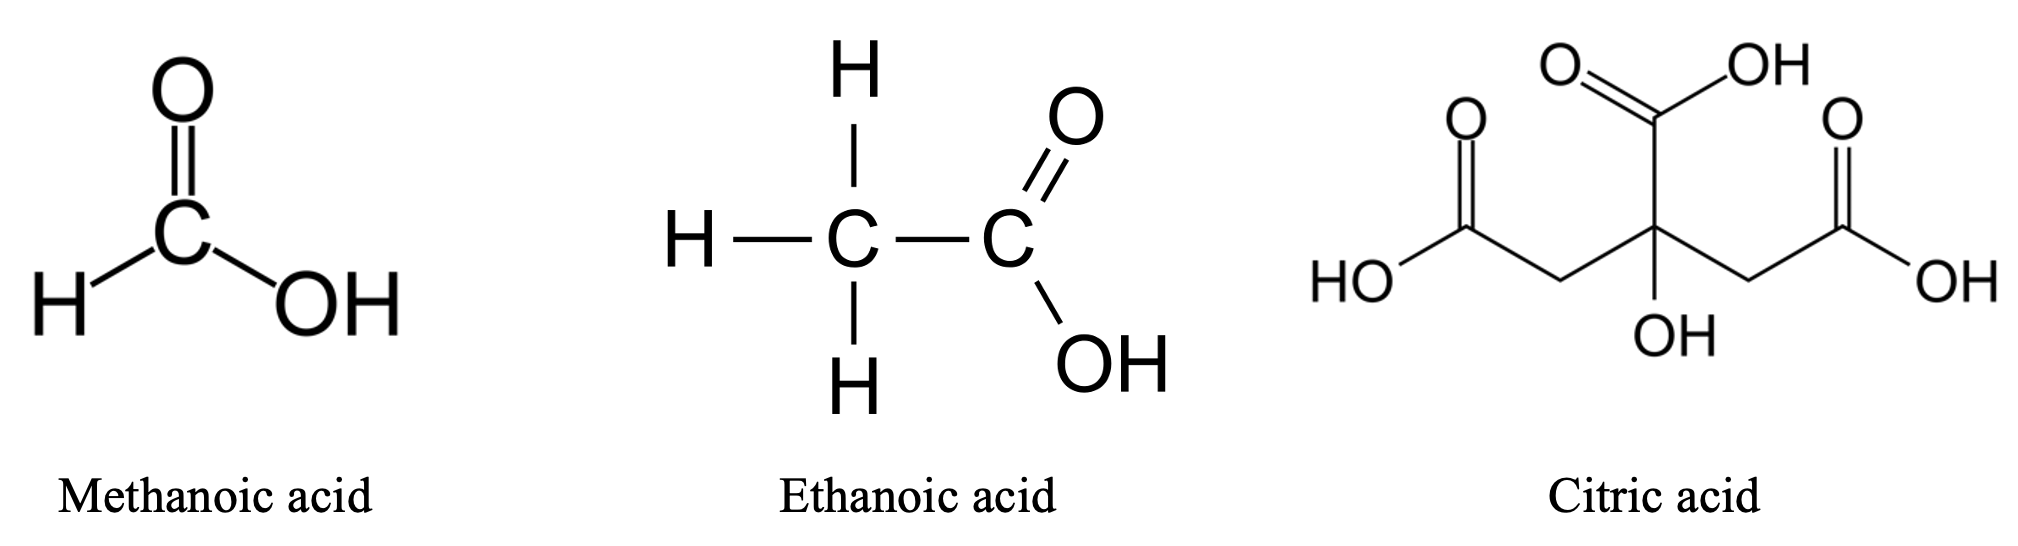 Examples of organic acids